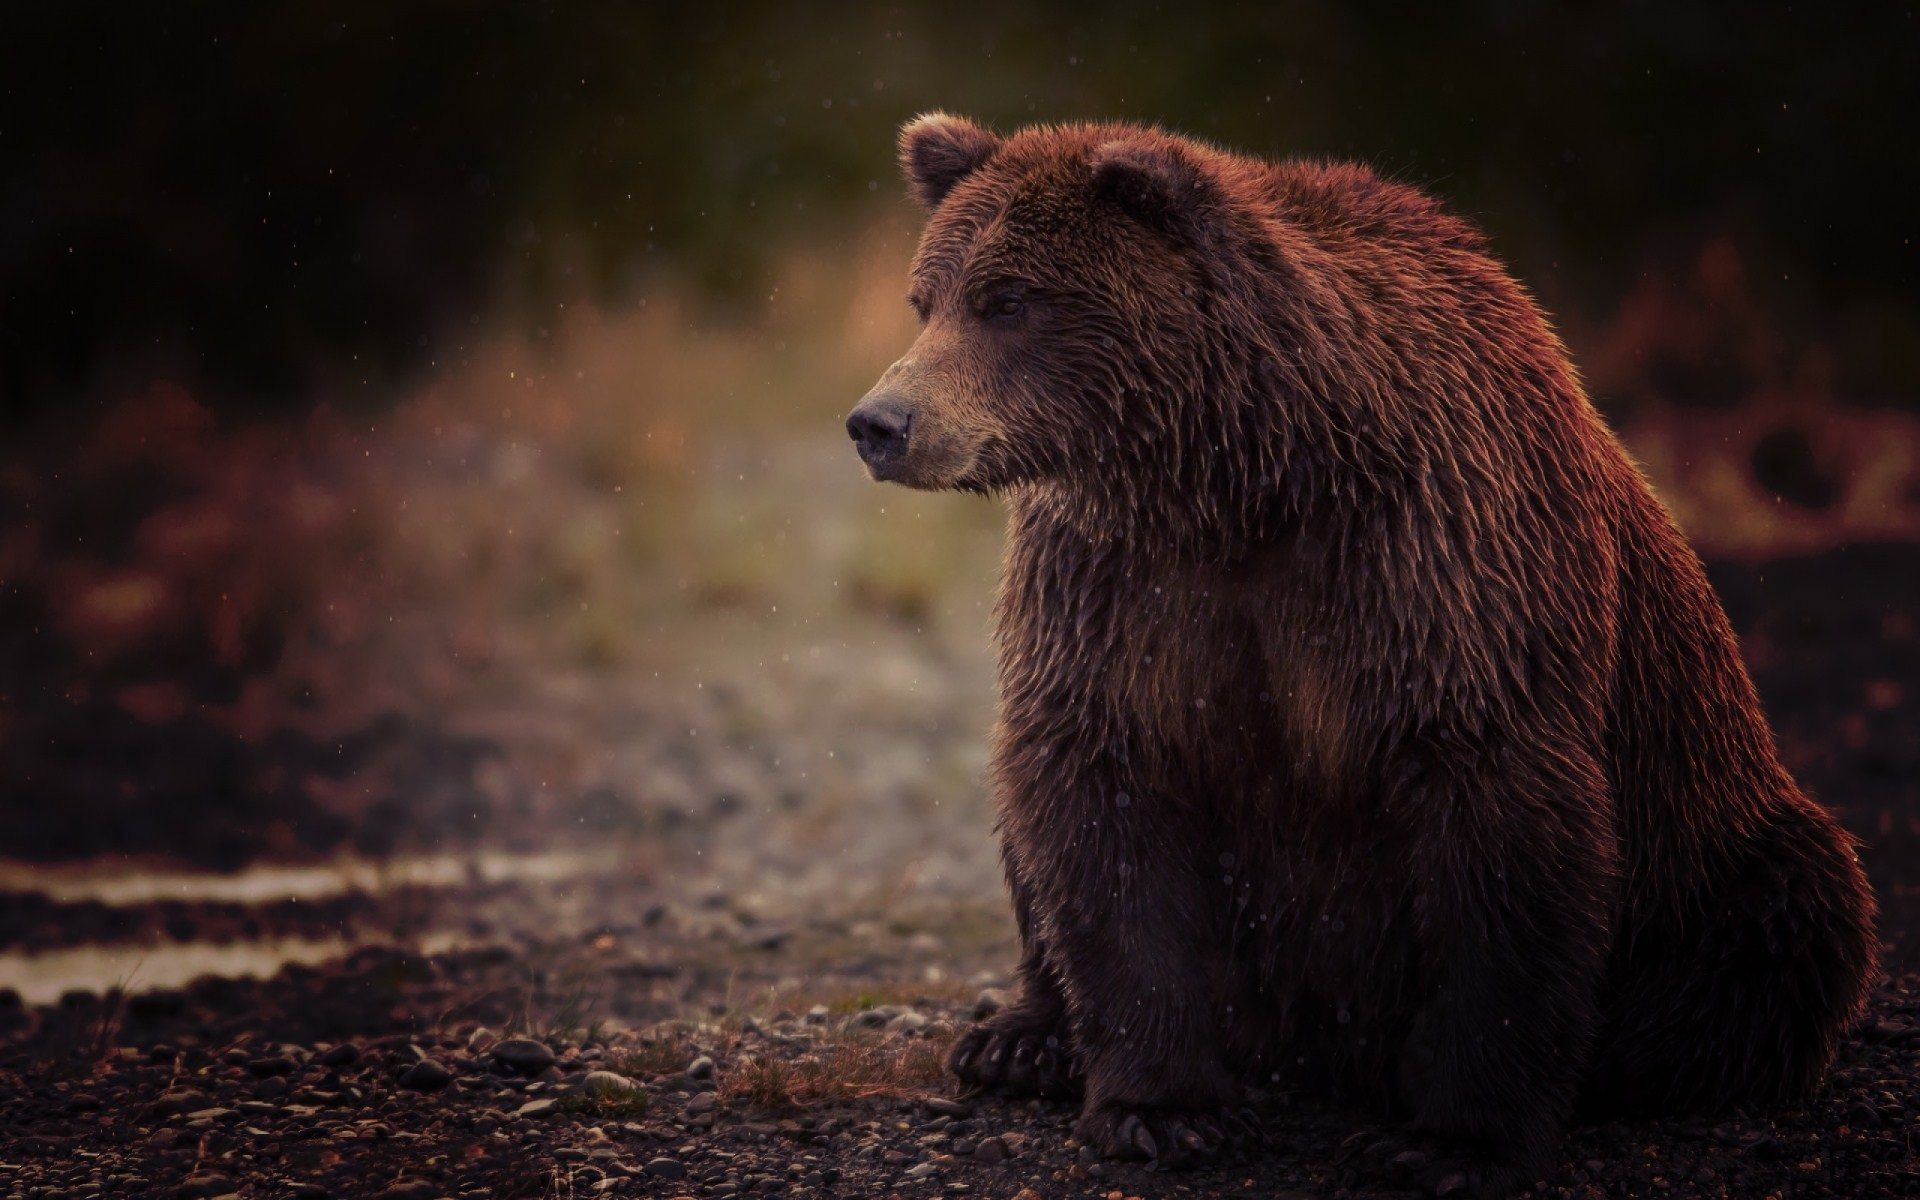 Grizzly bear Wallpaper GFXHive Brown bear, Bear